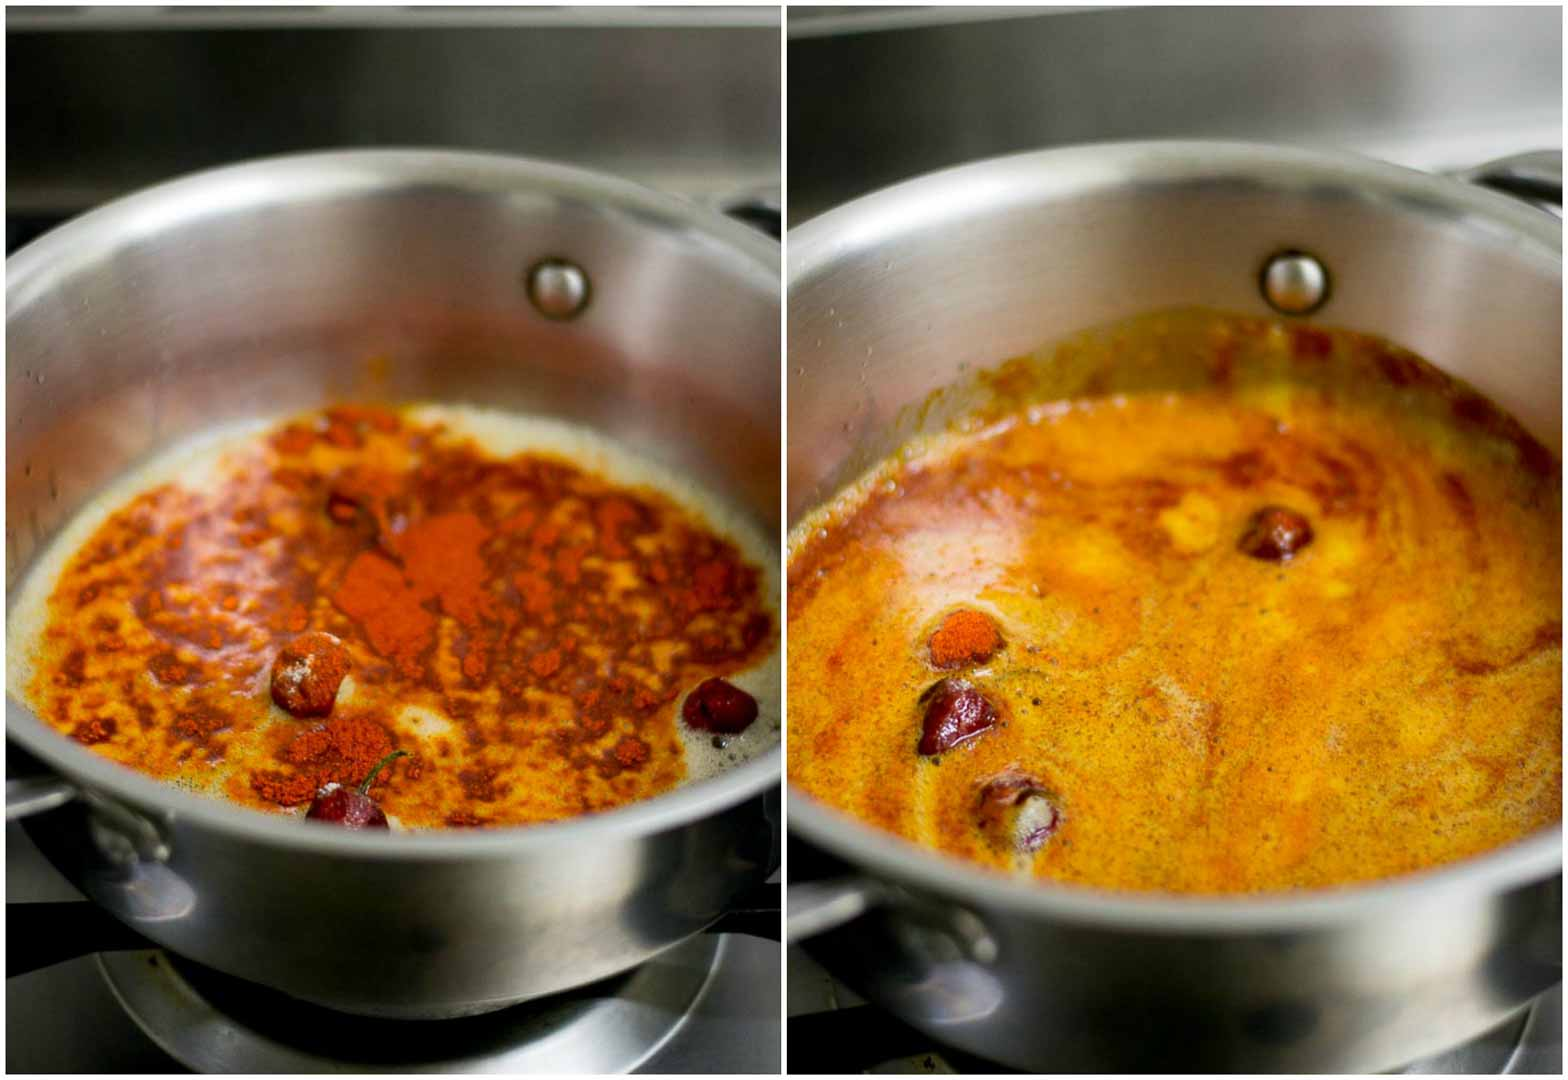 74e2d1ea5739 Add in the red chilli powder to the hot oil. Let the powder fry briefly for  a few seconds. Do not fry for long as the powder may burn.